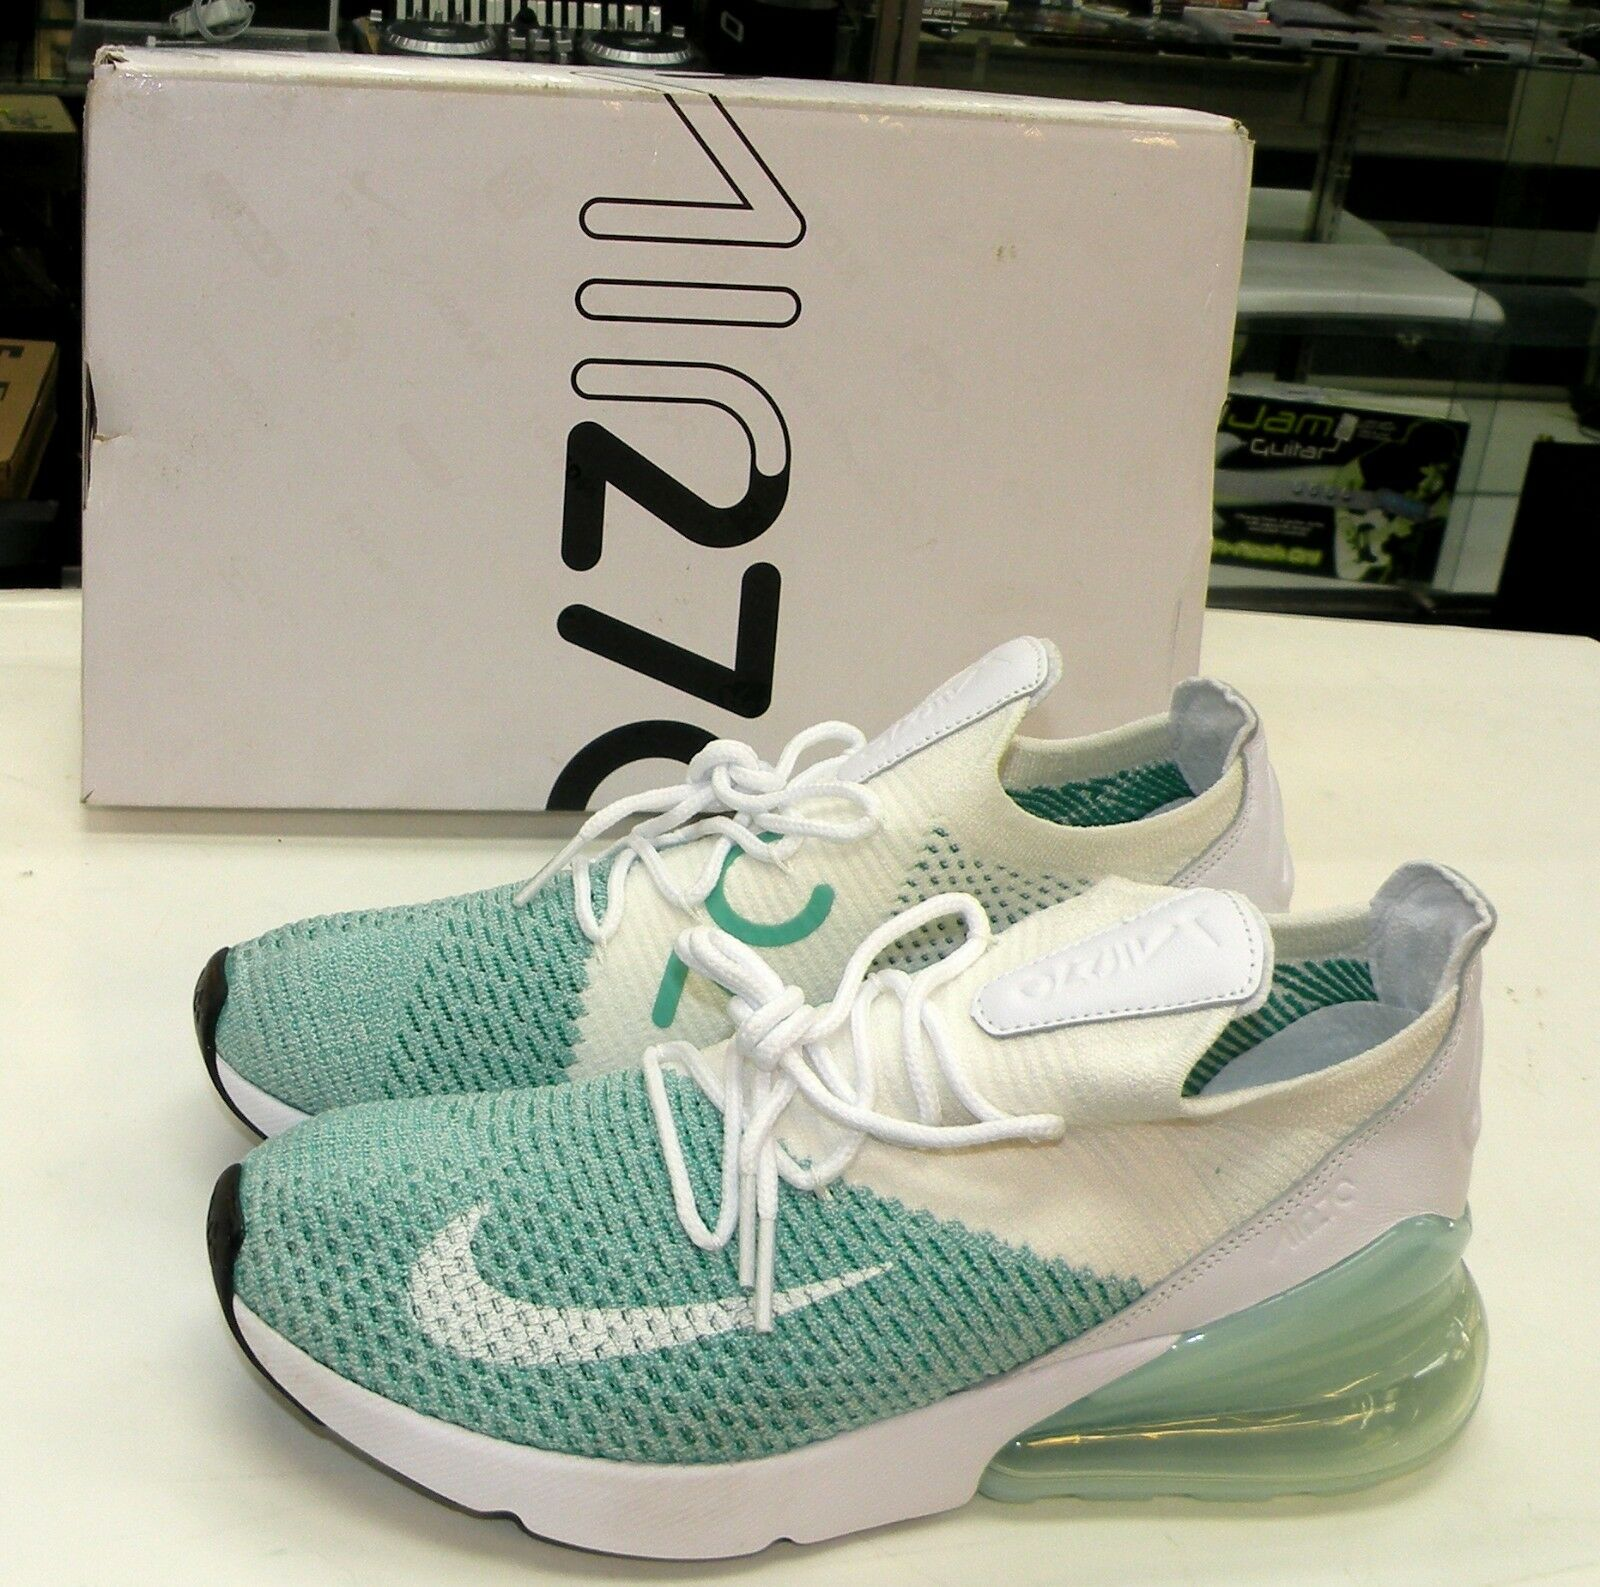 nike  's w air max 270 flyknit teal teal flyknit vert blanc courir ah6803-301 taille 7,5 295f75